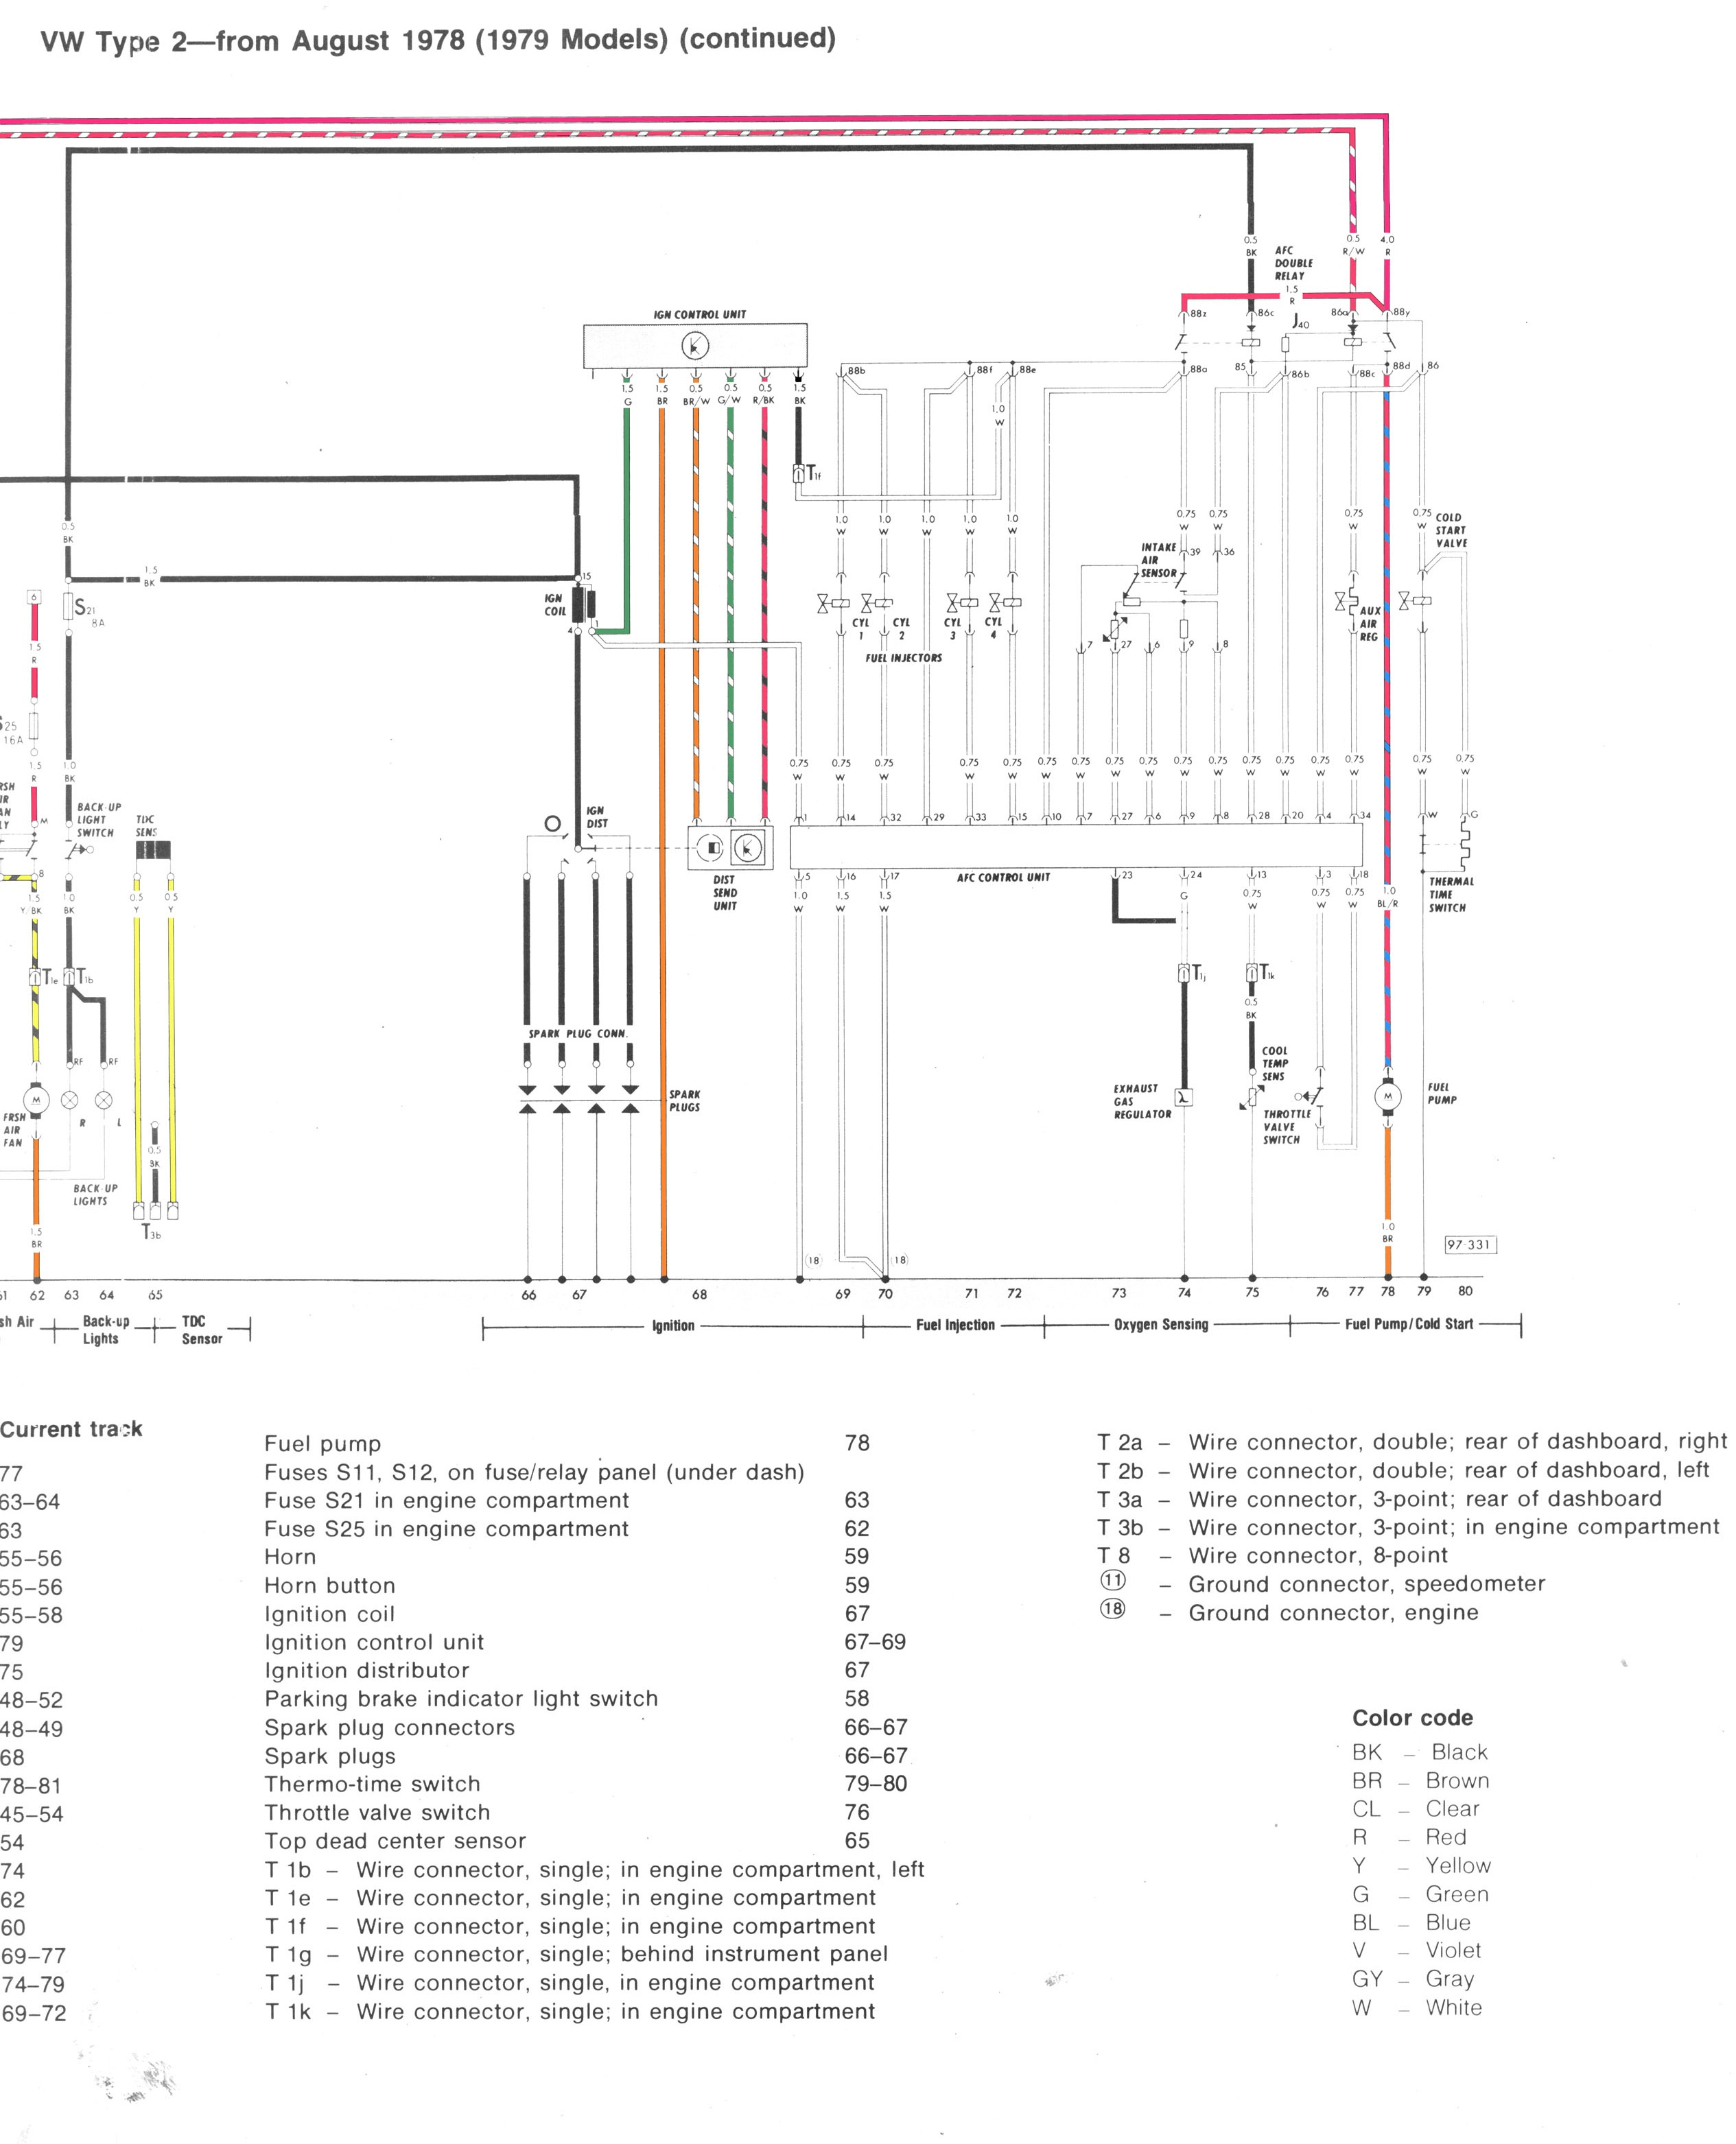 Uk Eurospec Cc Late Bus 75 79 Wiring Diagram